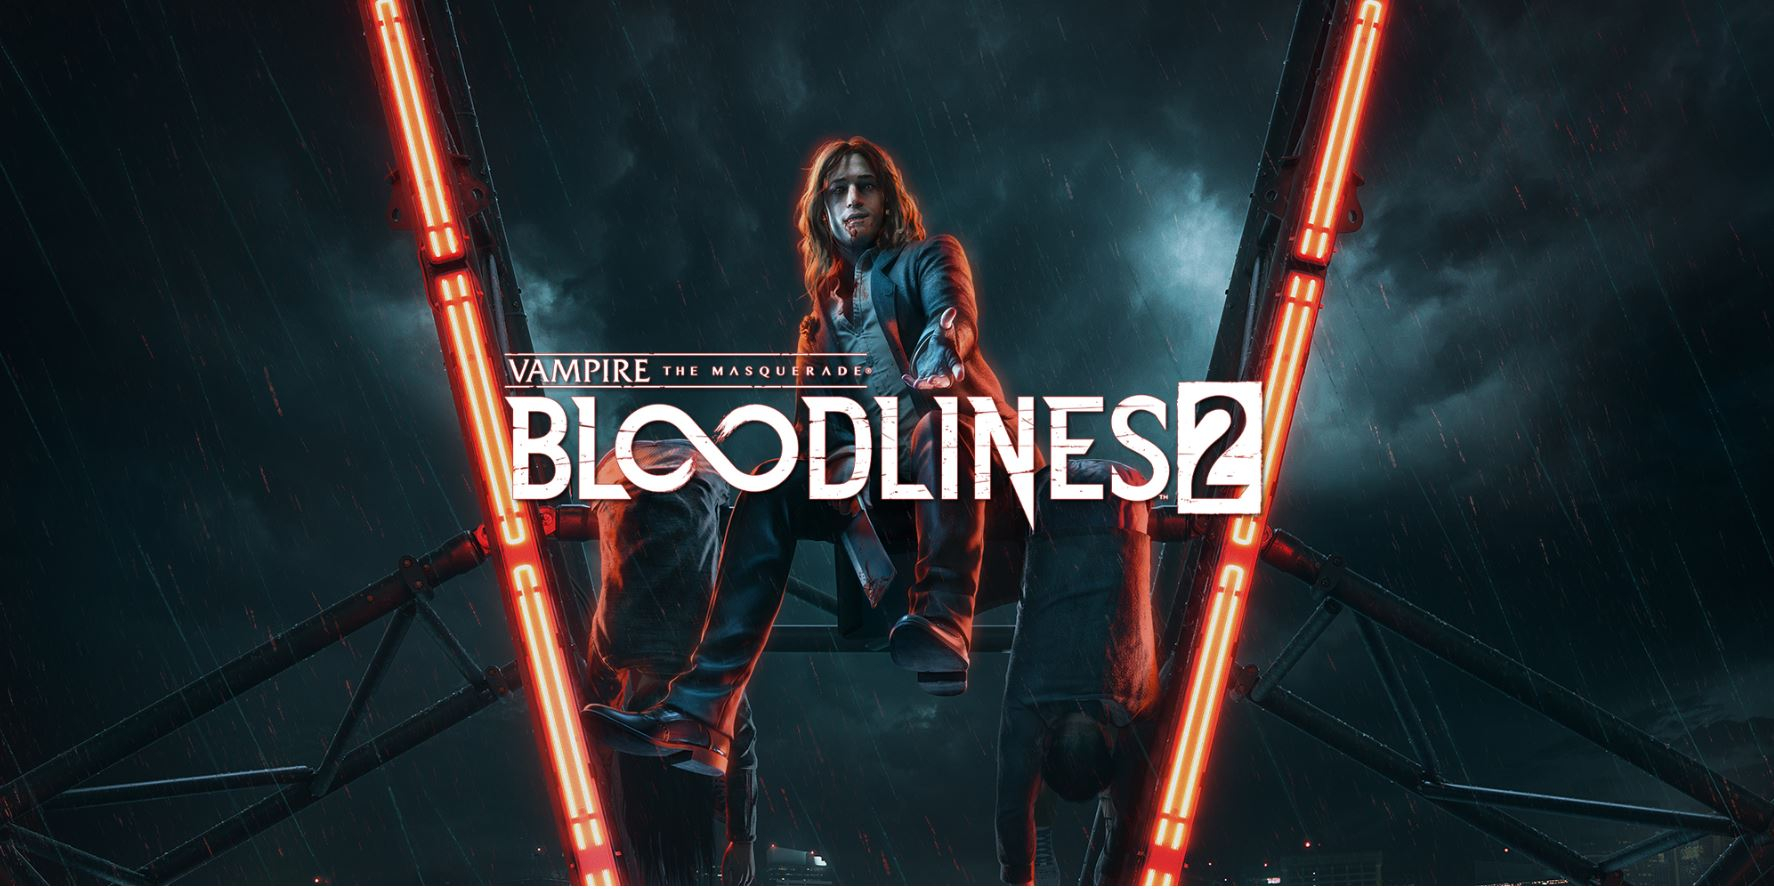 Vampire: The Masquerade – Bloodlines 2 New Gameplay Footage Revealed